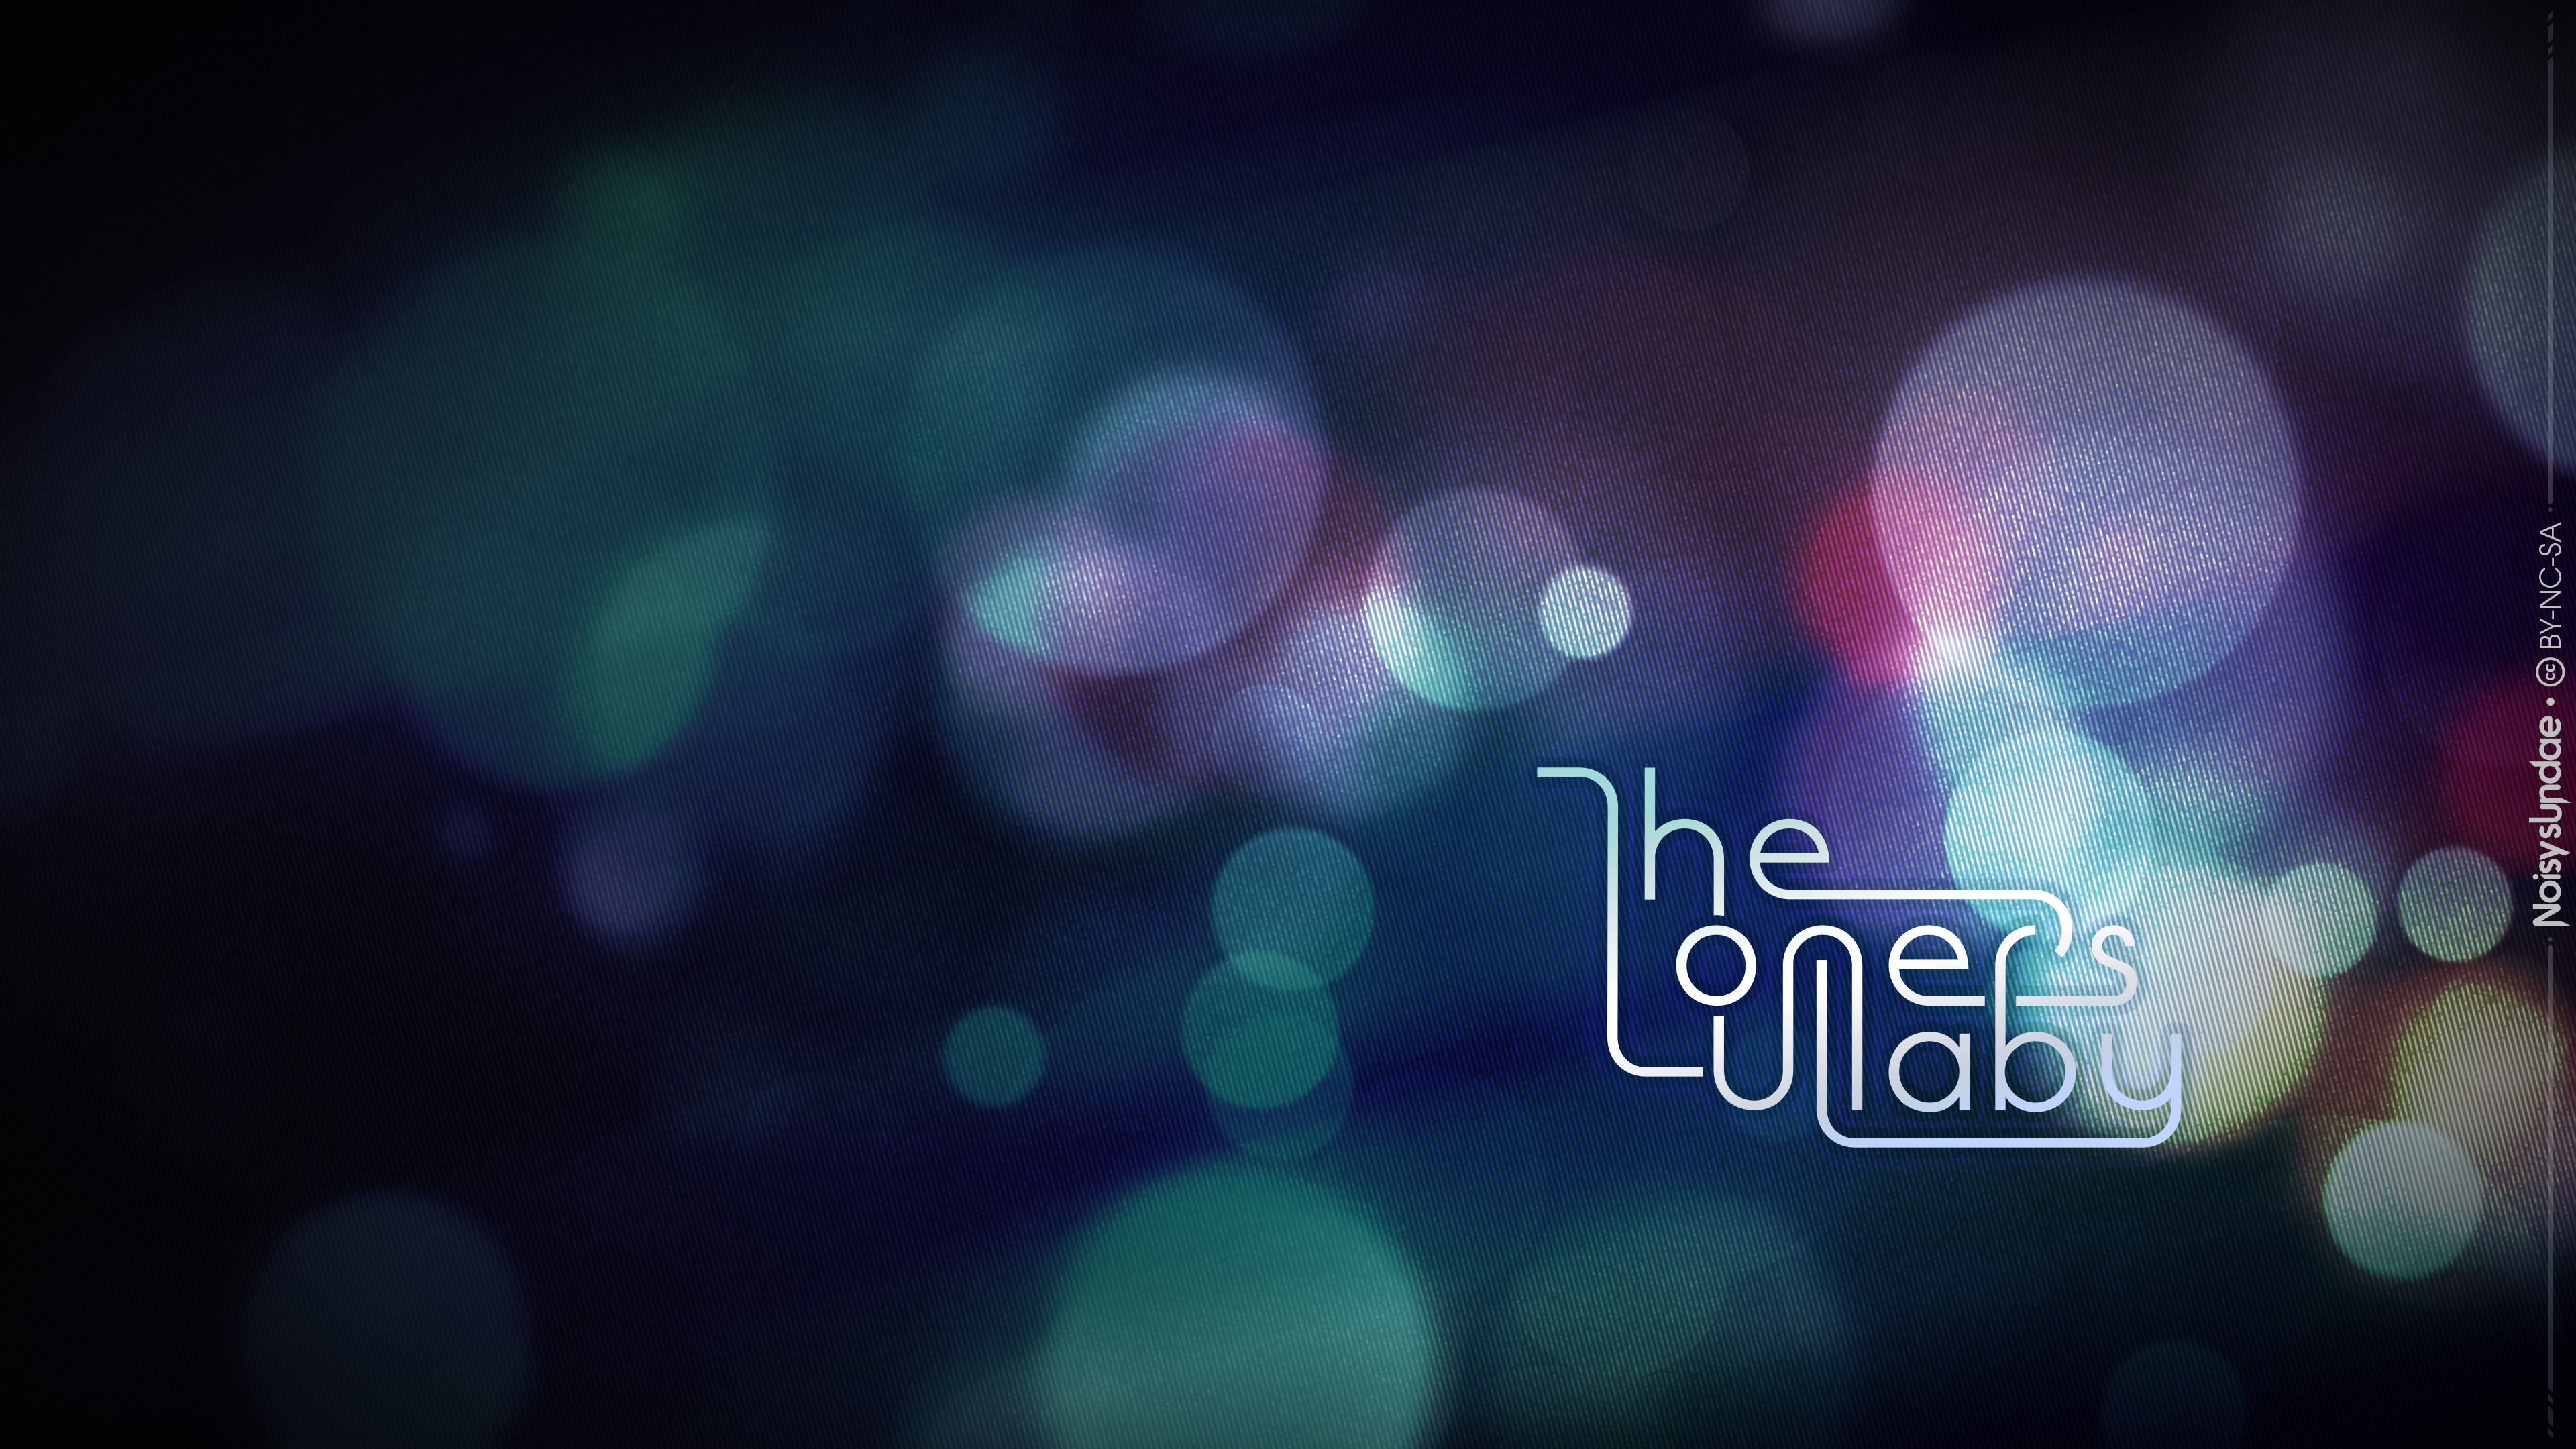 Noisysundae wallpaper - The Loner's Lullaby